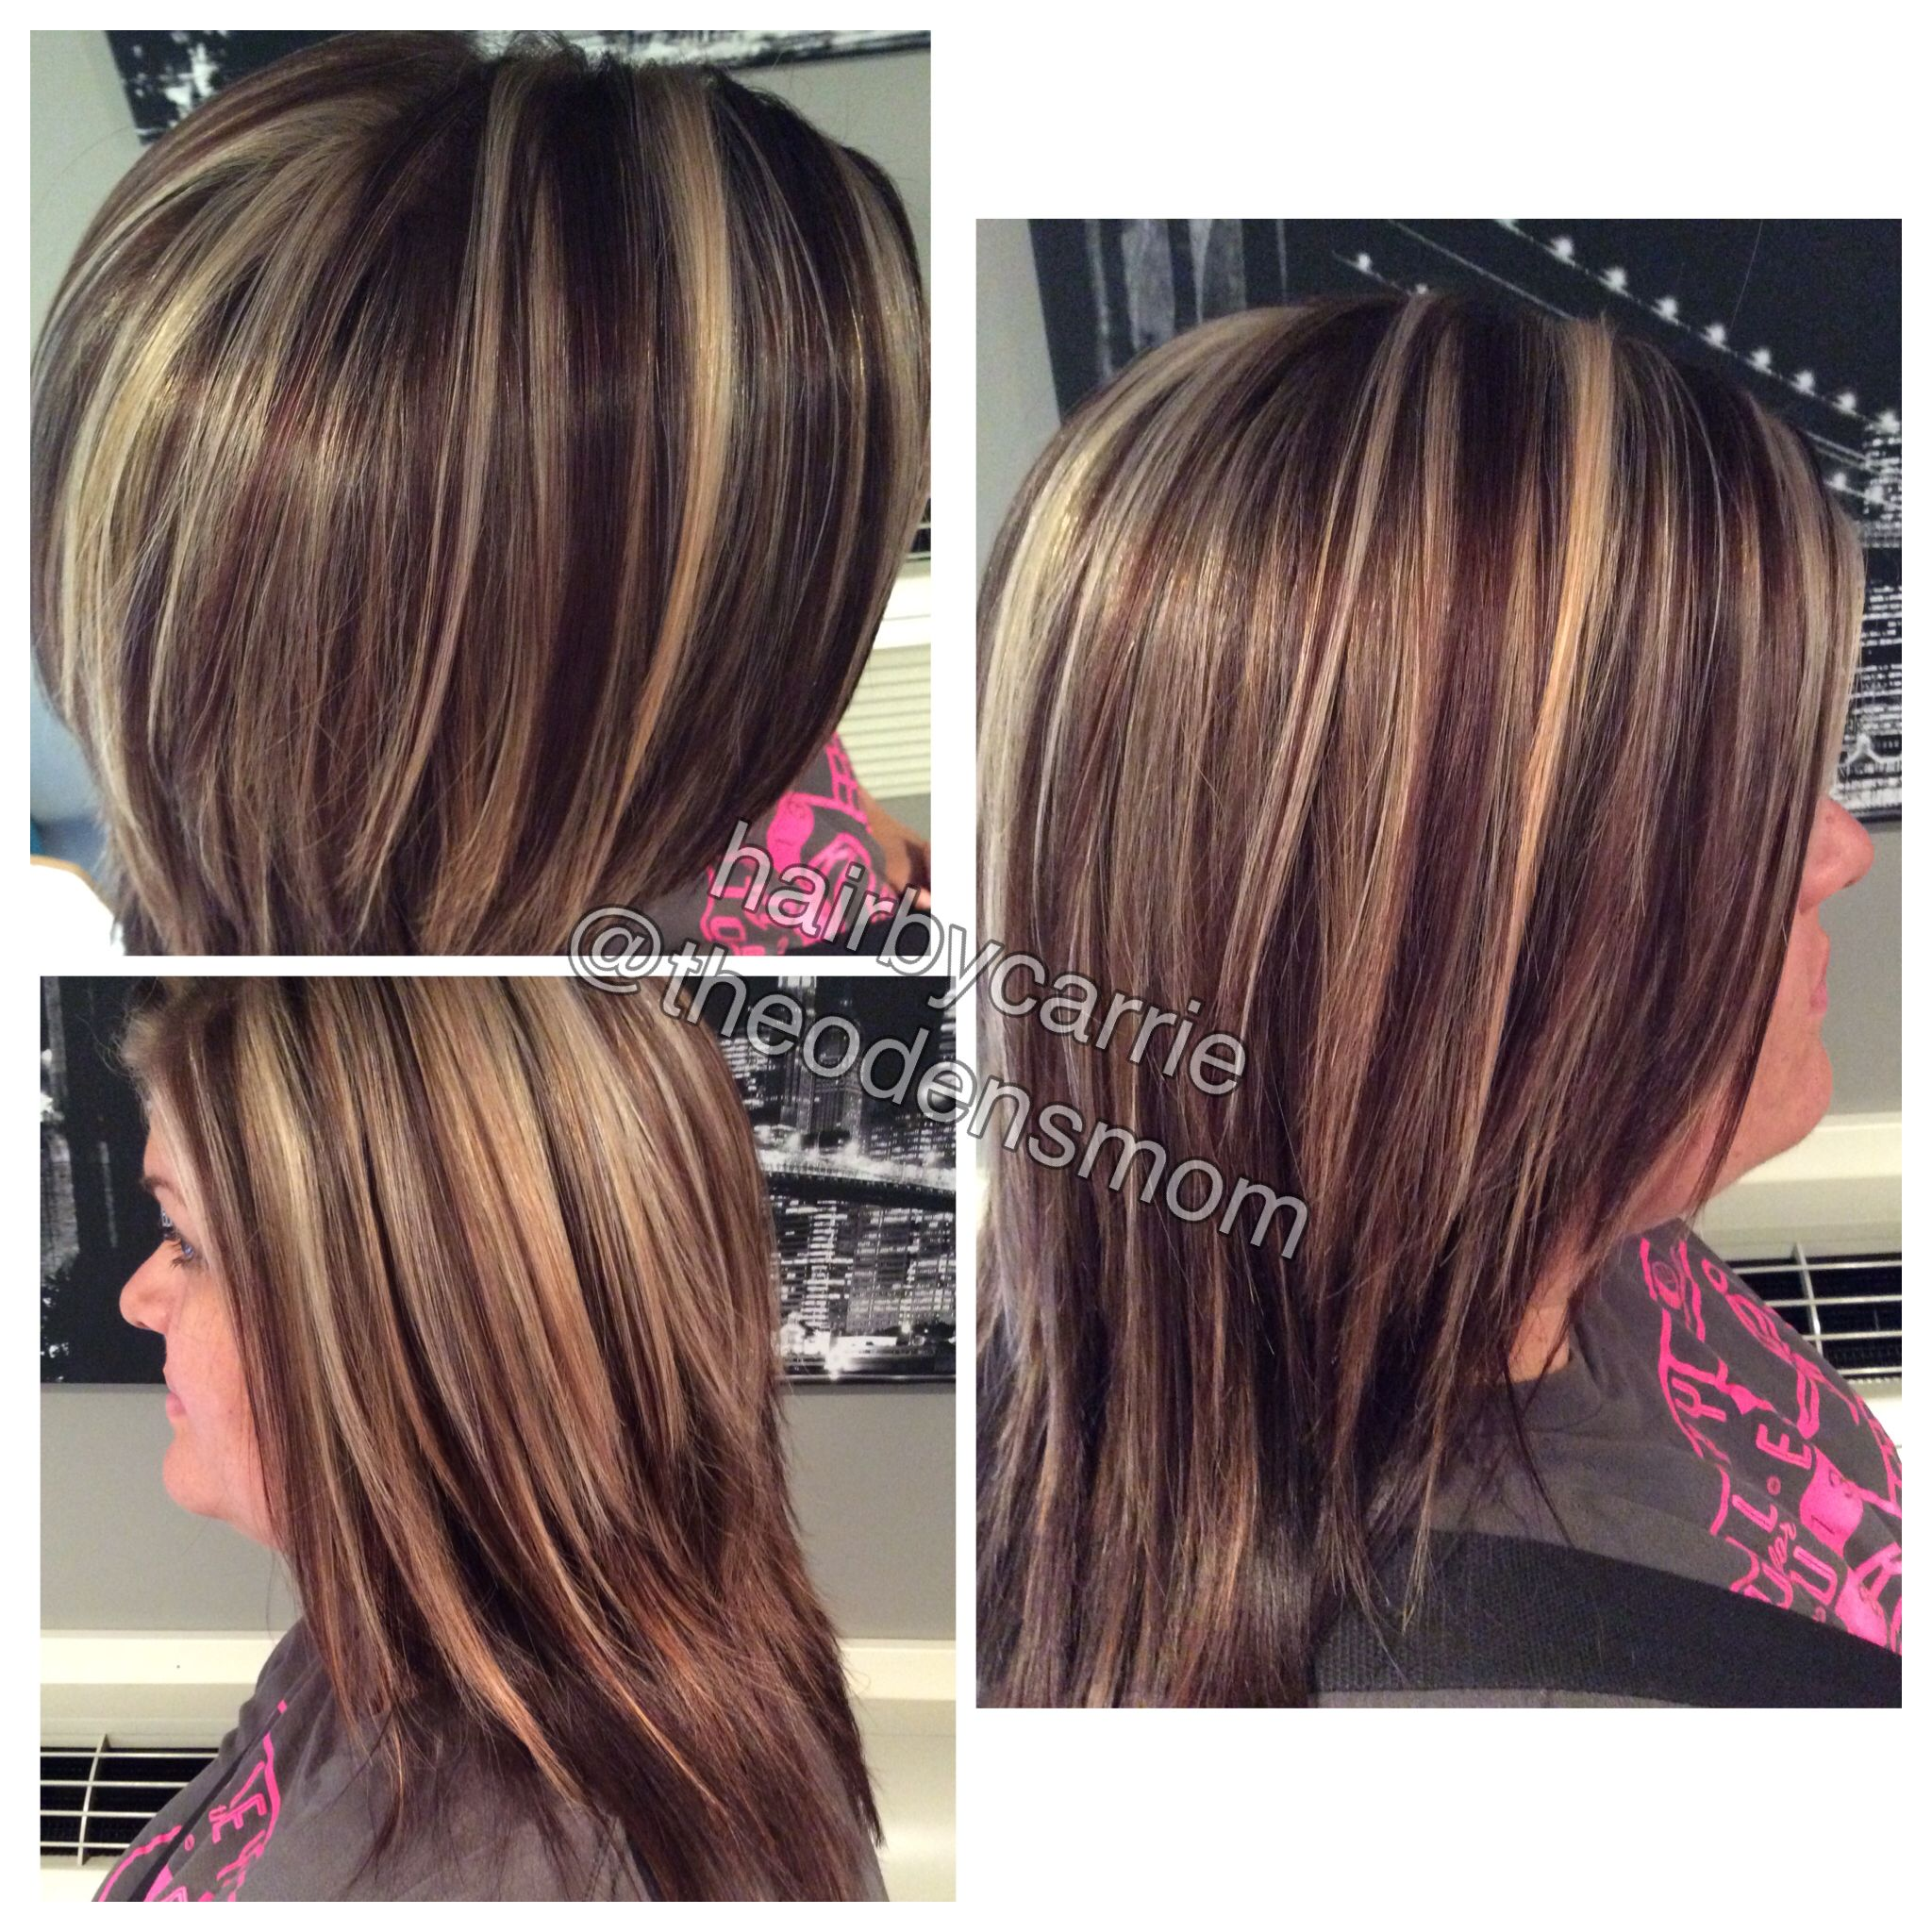 Blonde And Golden Brown Chunky Highlights Kenra Color Hair By